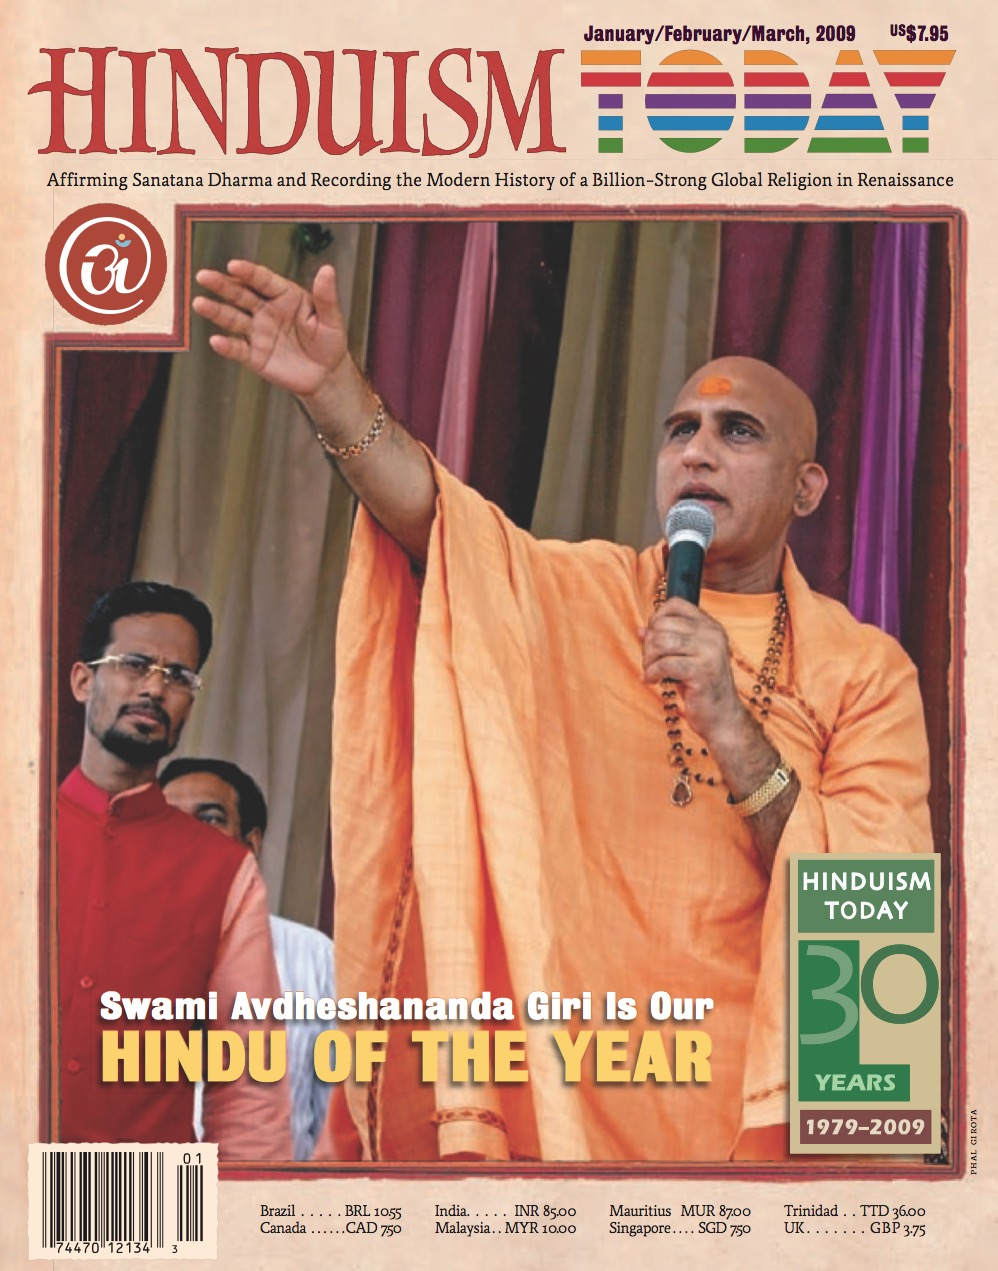 Hinduism Today Jan/Feb/Mar 2009